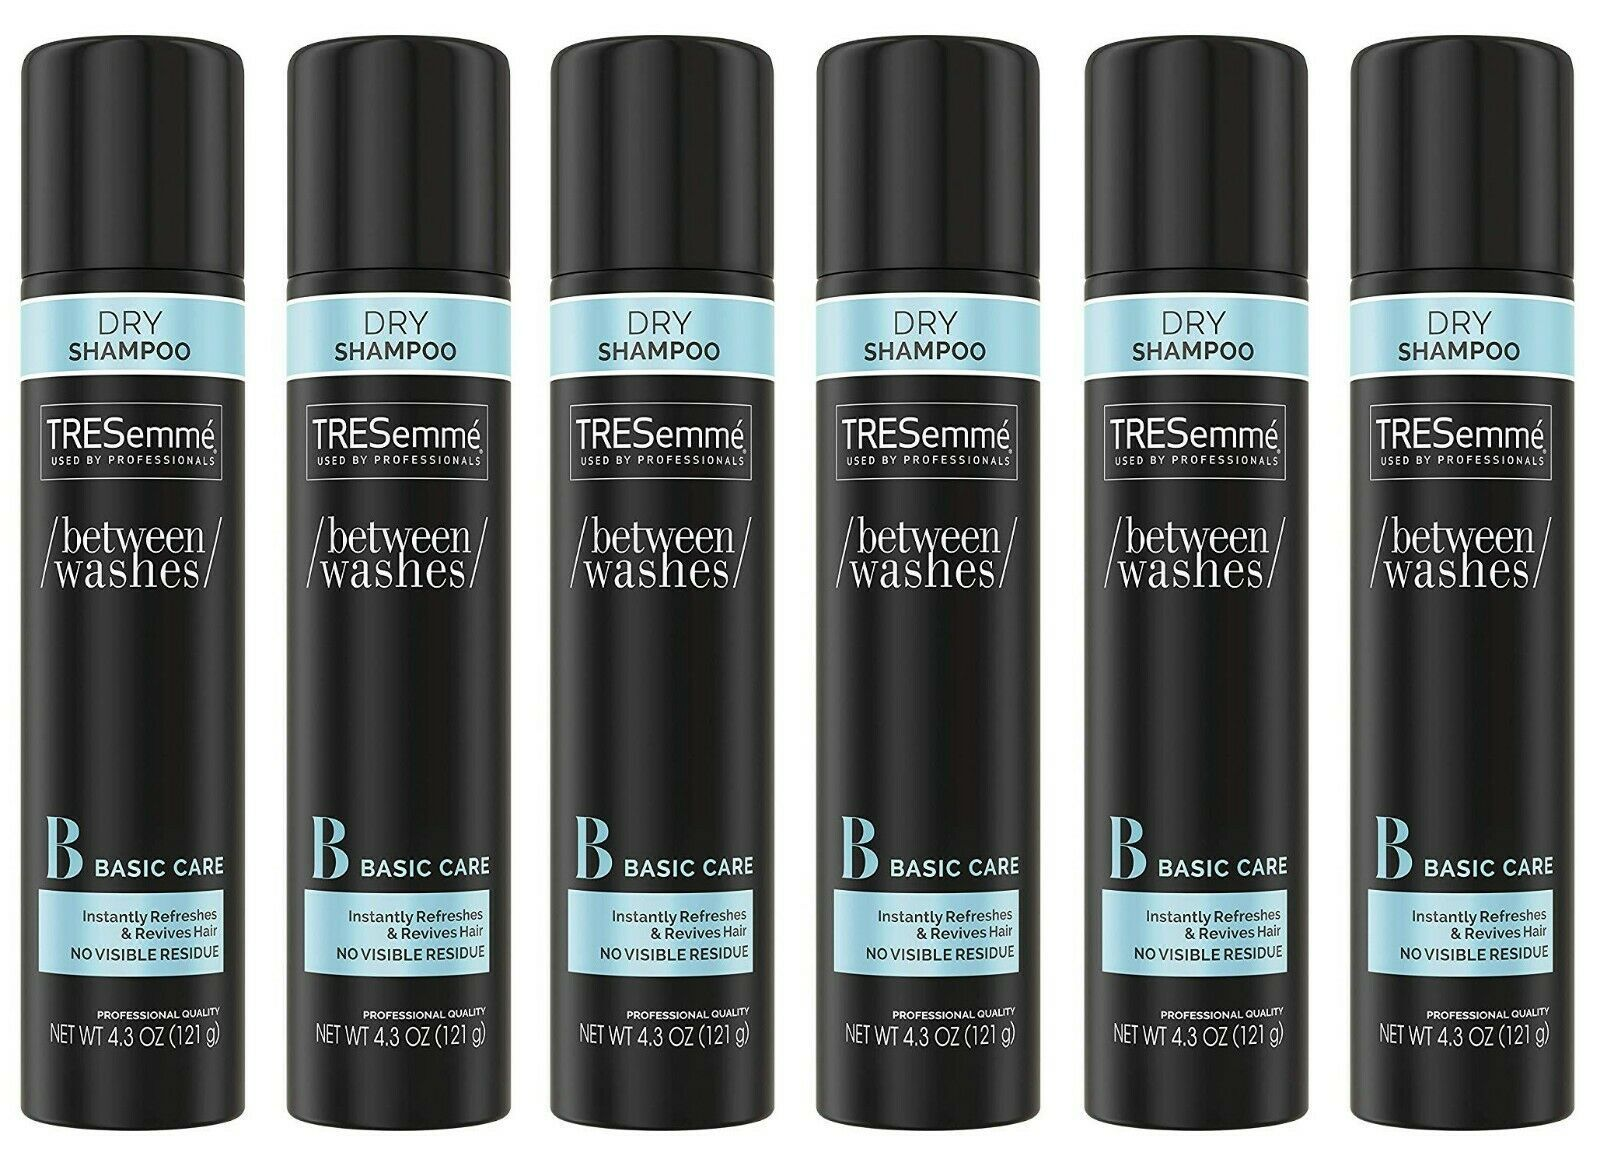 6 Pack of TRESemmé DRY SHAMPOO For Brittle Dry Hair 4.3oz each No Residue/Water!